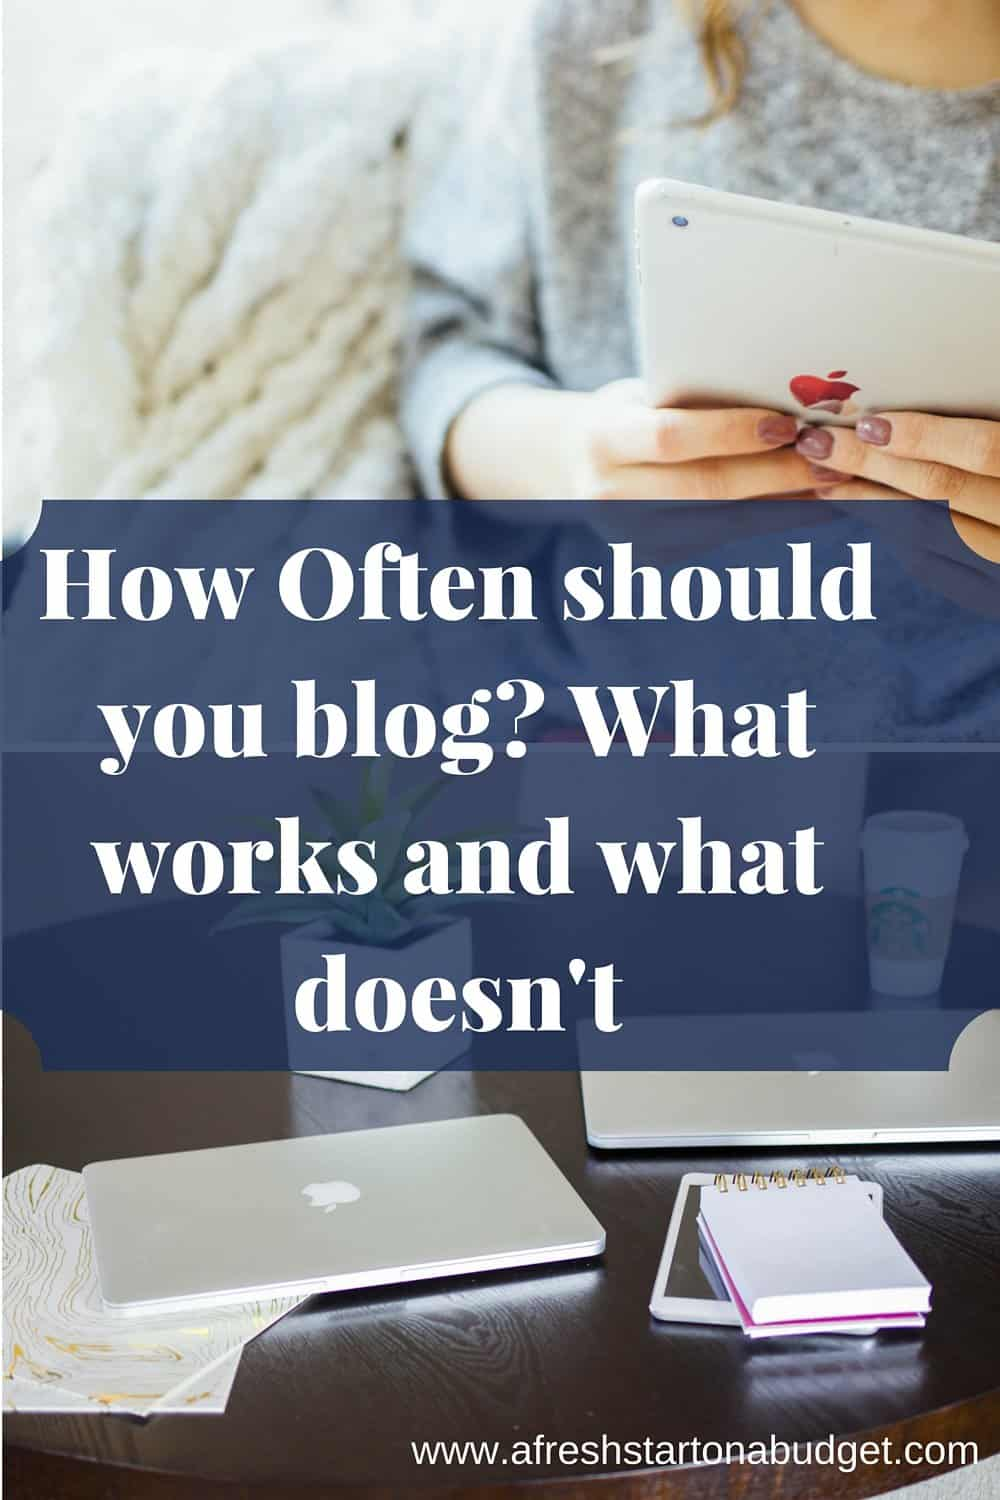 How Often should you blog? What works and what doesn't